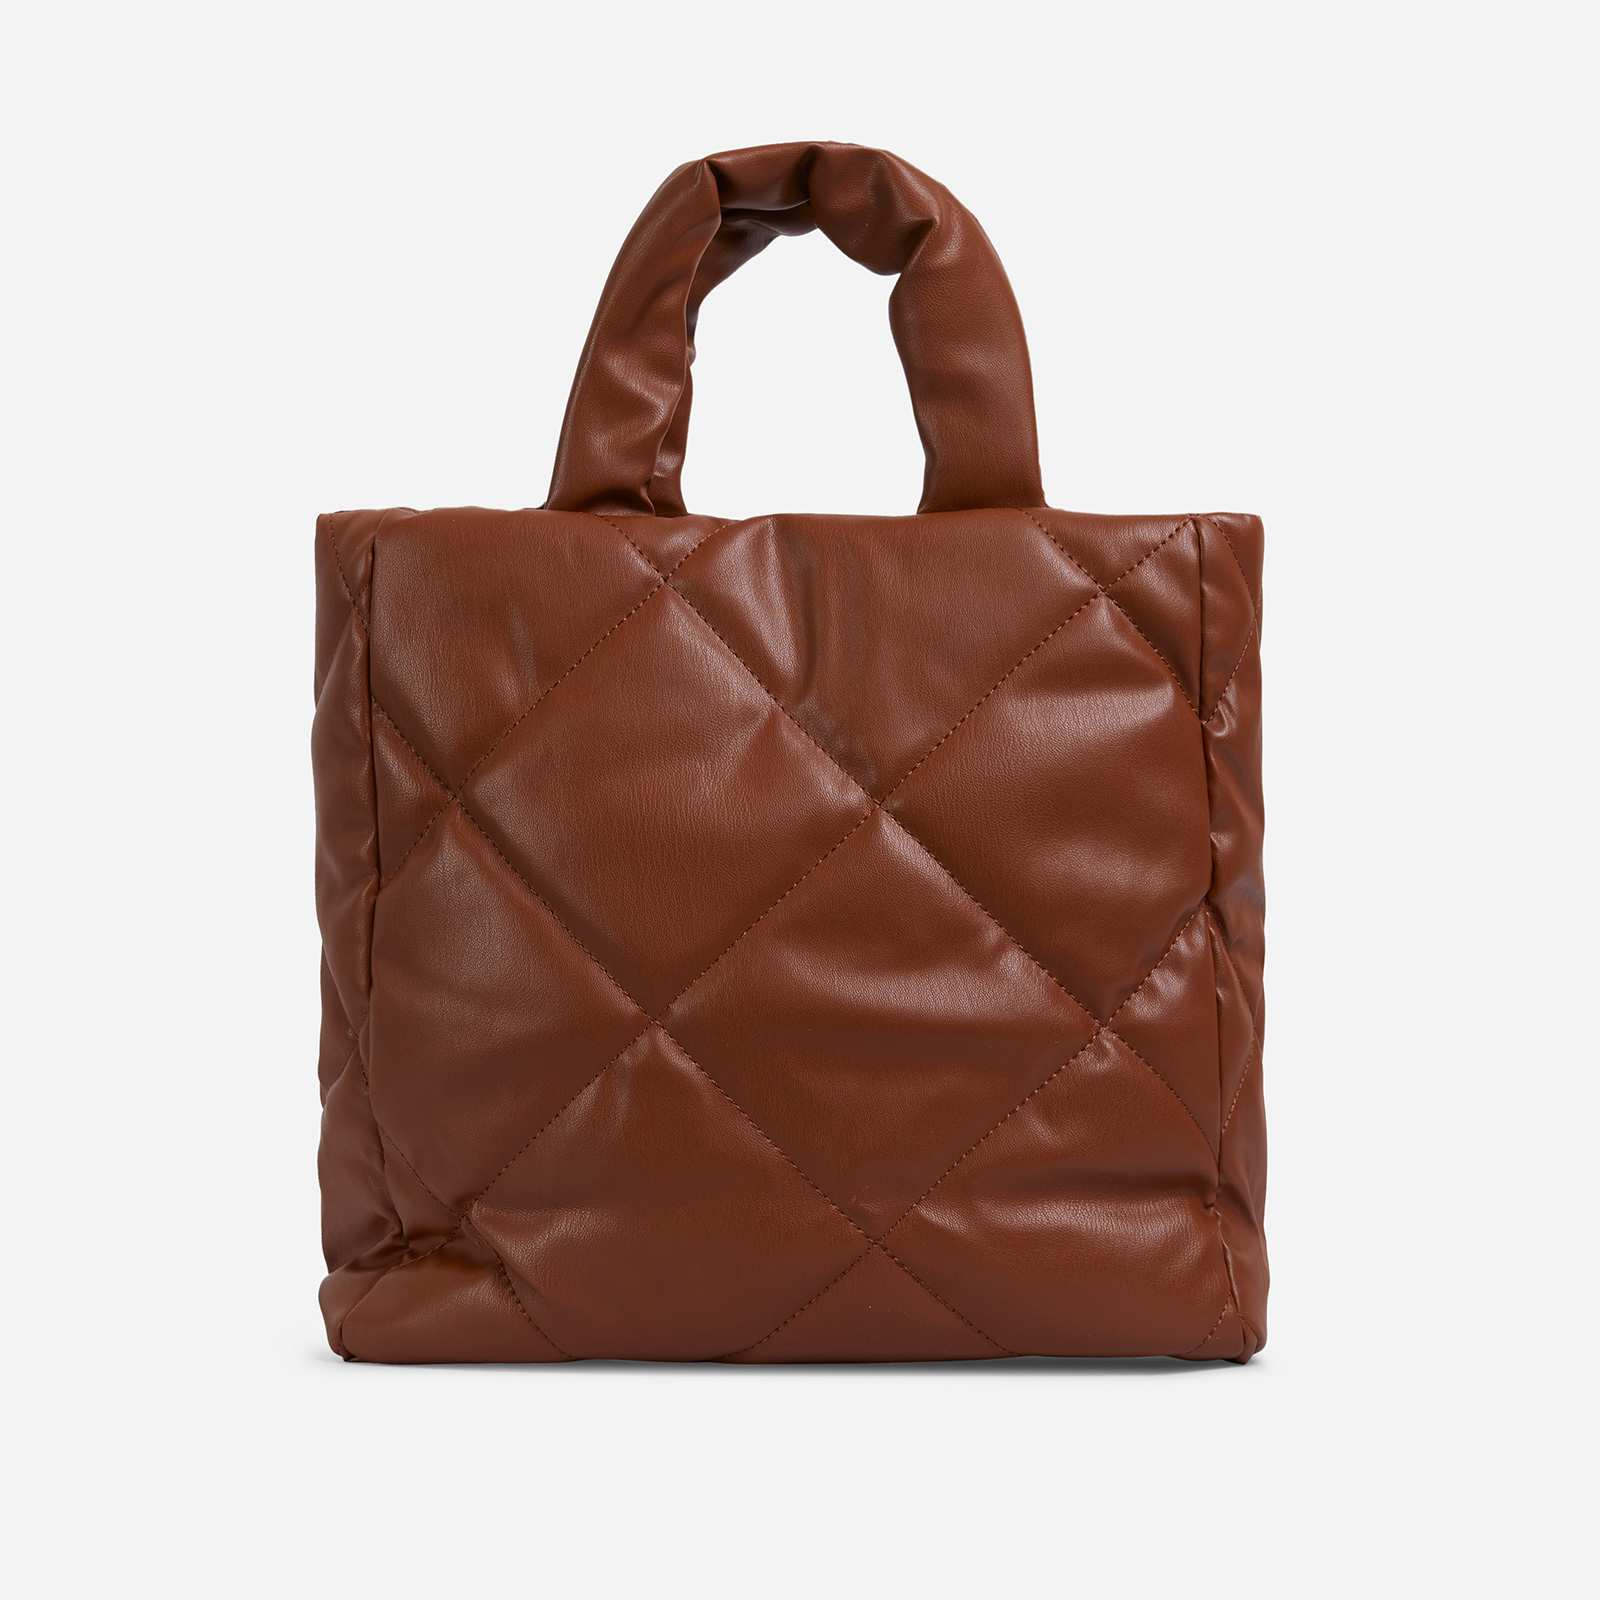 Fearn Large Quilted Tote Bag In Nude Faux Leather